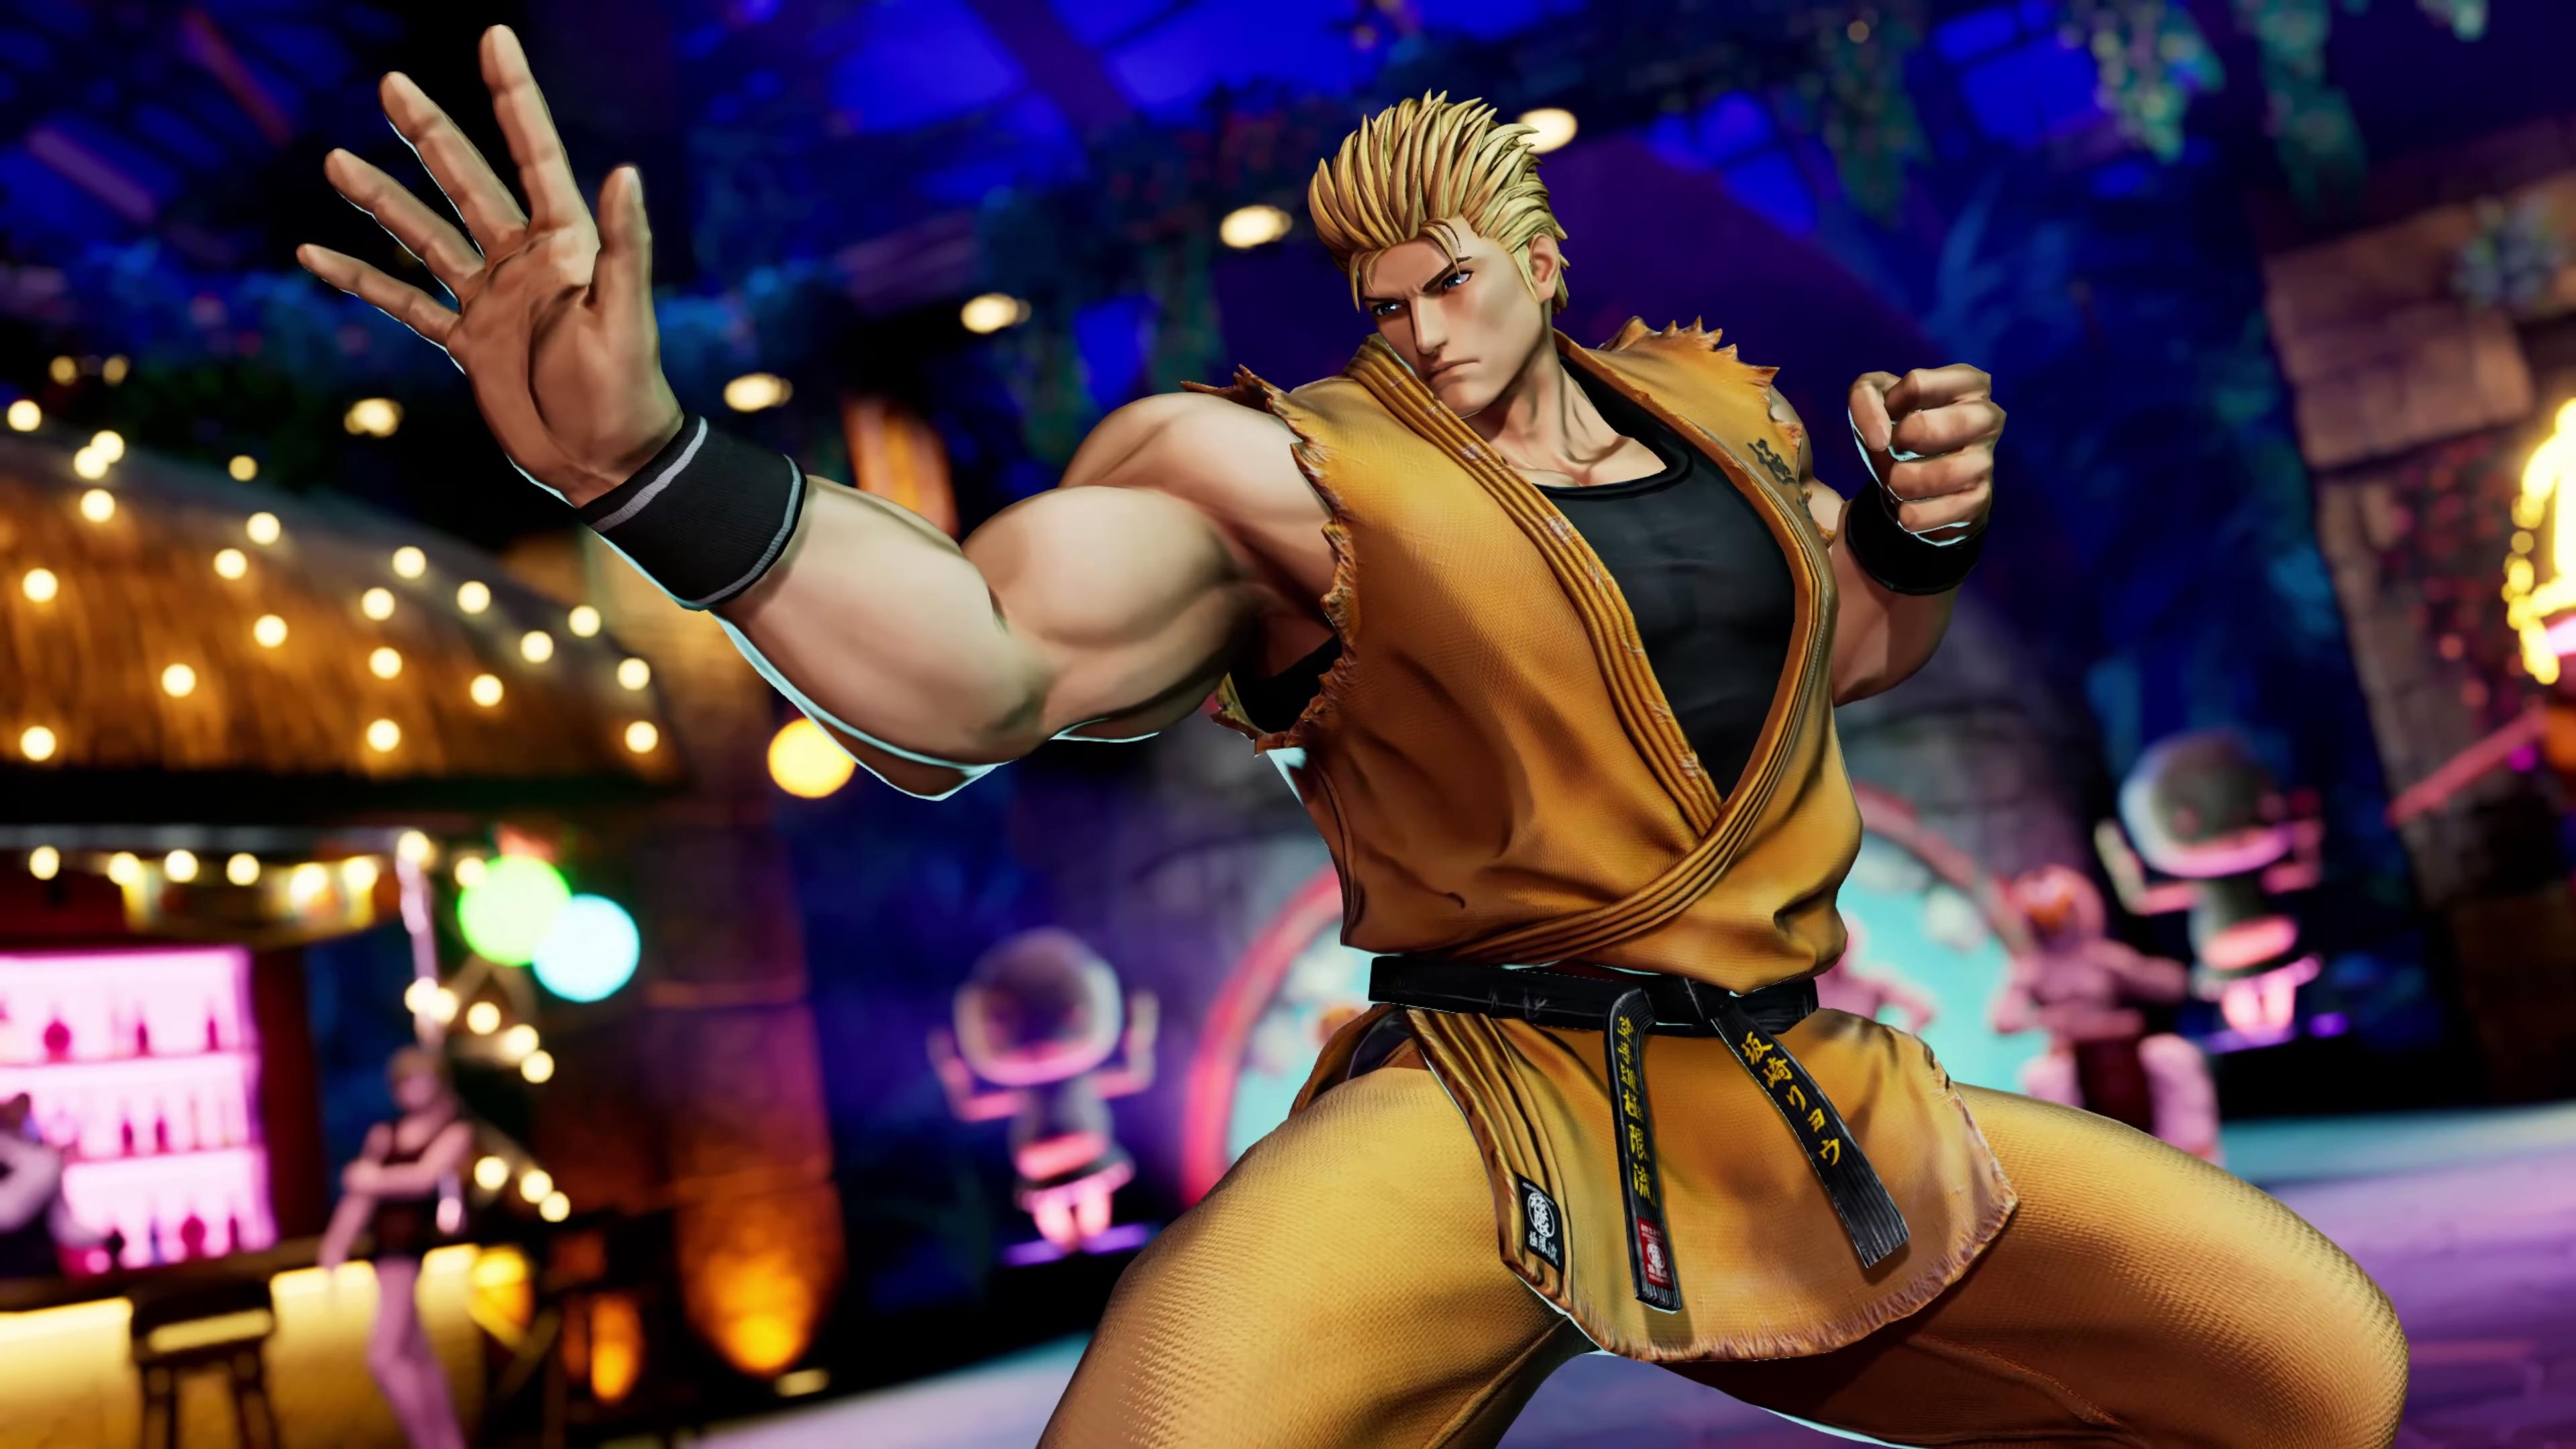 Robert and Ryo KOF15 reveal 1 out of 9 image gallery